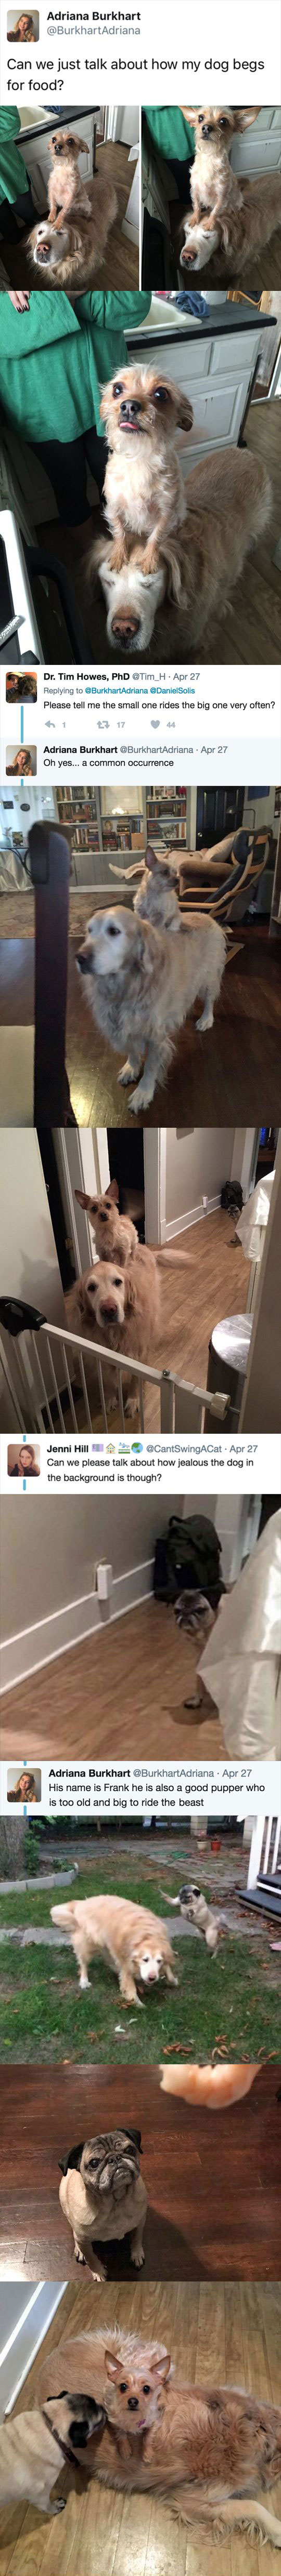 dog standing on dog begging for food 4 A Simple Tweet About Two Dogs Unfolded Into a Beautiful Twitter Story